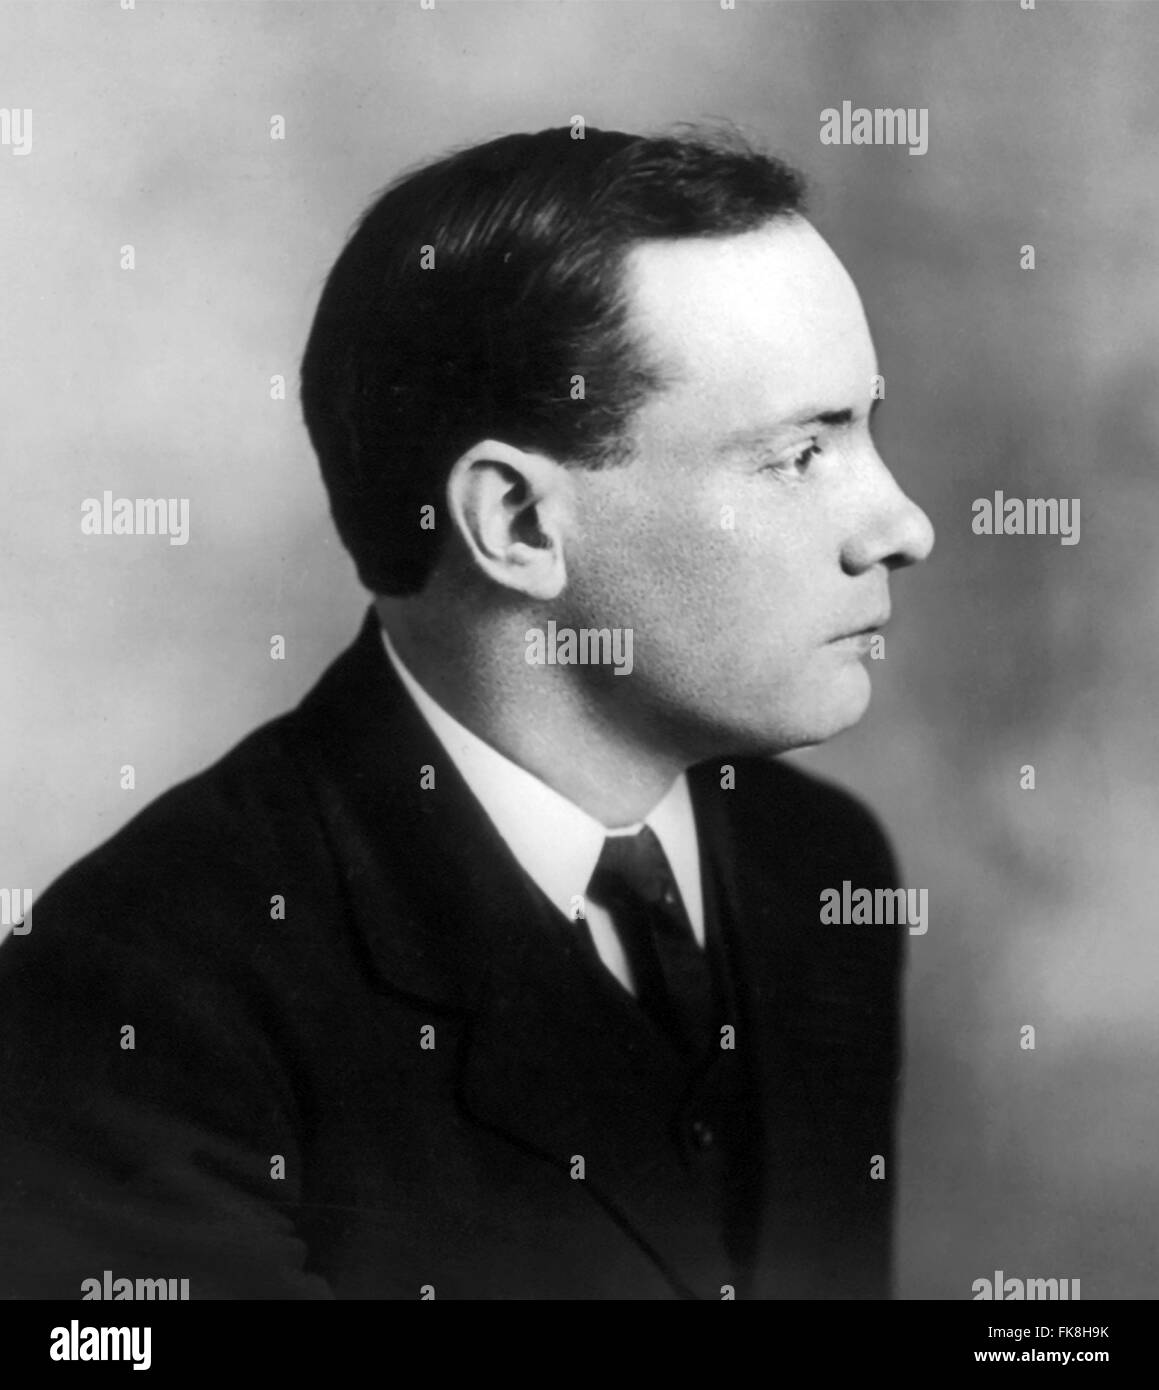 Patrick Pearse, the Irish teacher, barrister and political activist who was one of the leaders of the Easter Rising, - Stock Image